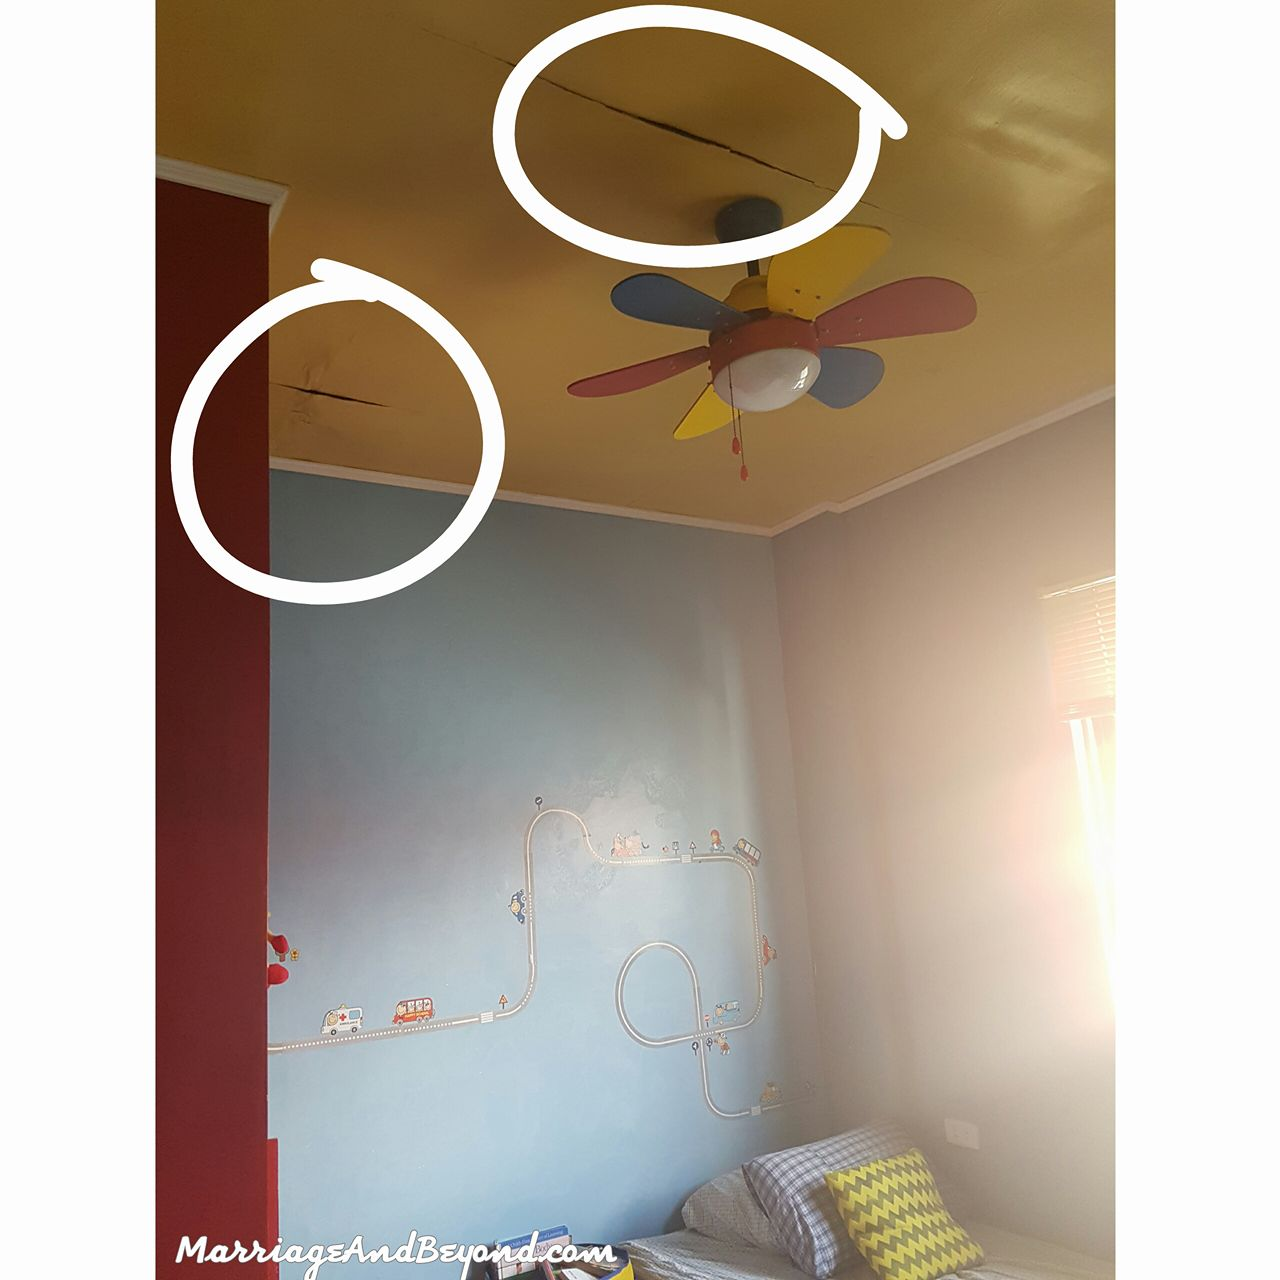 kid's room roofing problem ceiling leak